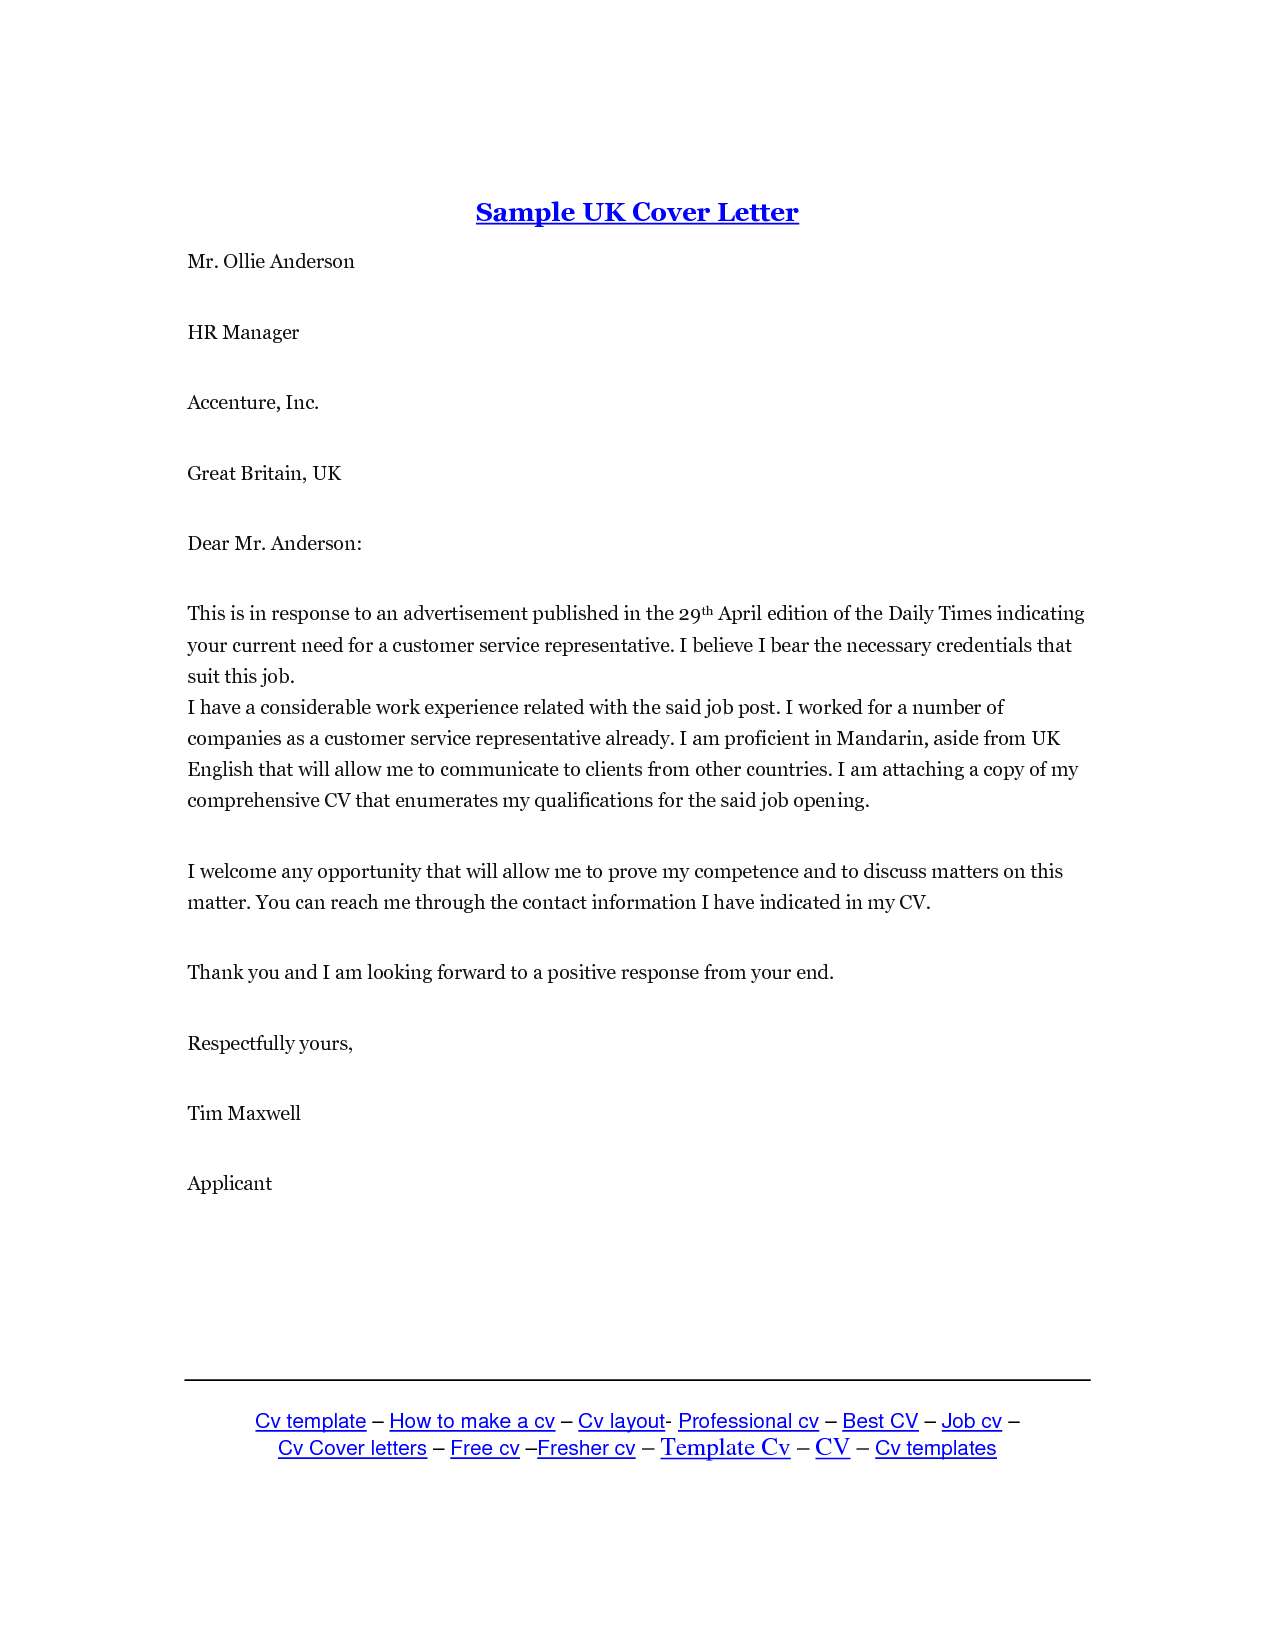 Email Cover Letter Template Uk 2 Cover Letter Template Pinterest